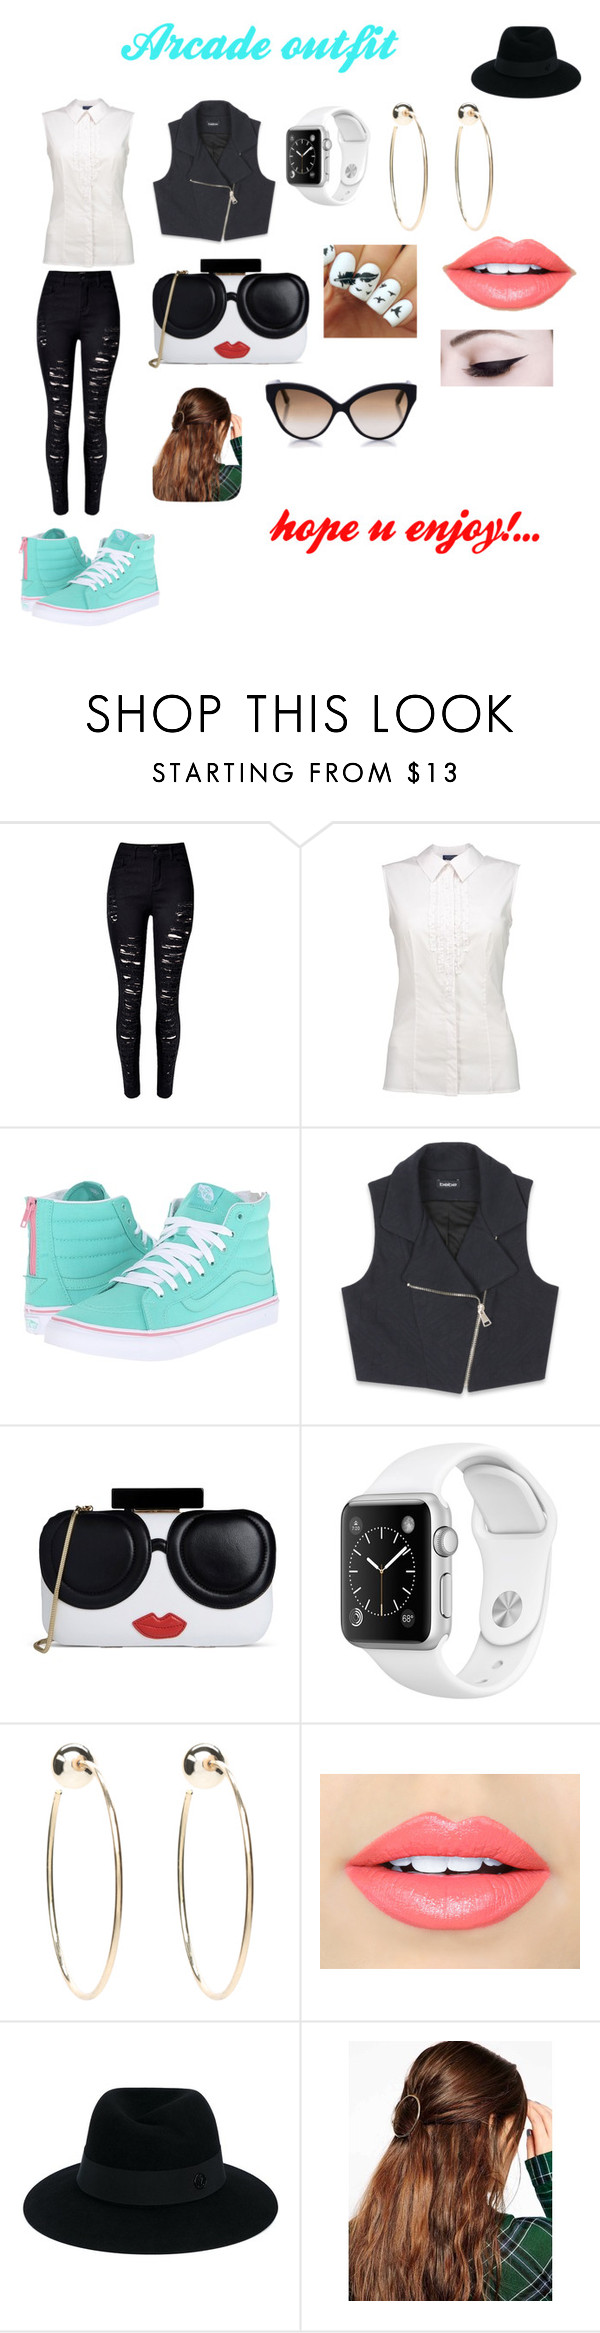 """""""Arcade outfit"""" by minions4ever123 ❤ liked on Polyvore featuring Vans, Bebe, Alice + Olivia, Fiebiger, Maison Michel, ASOS and Cutler and Gross"""